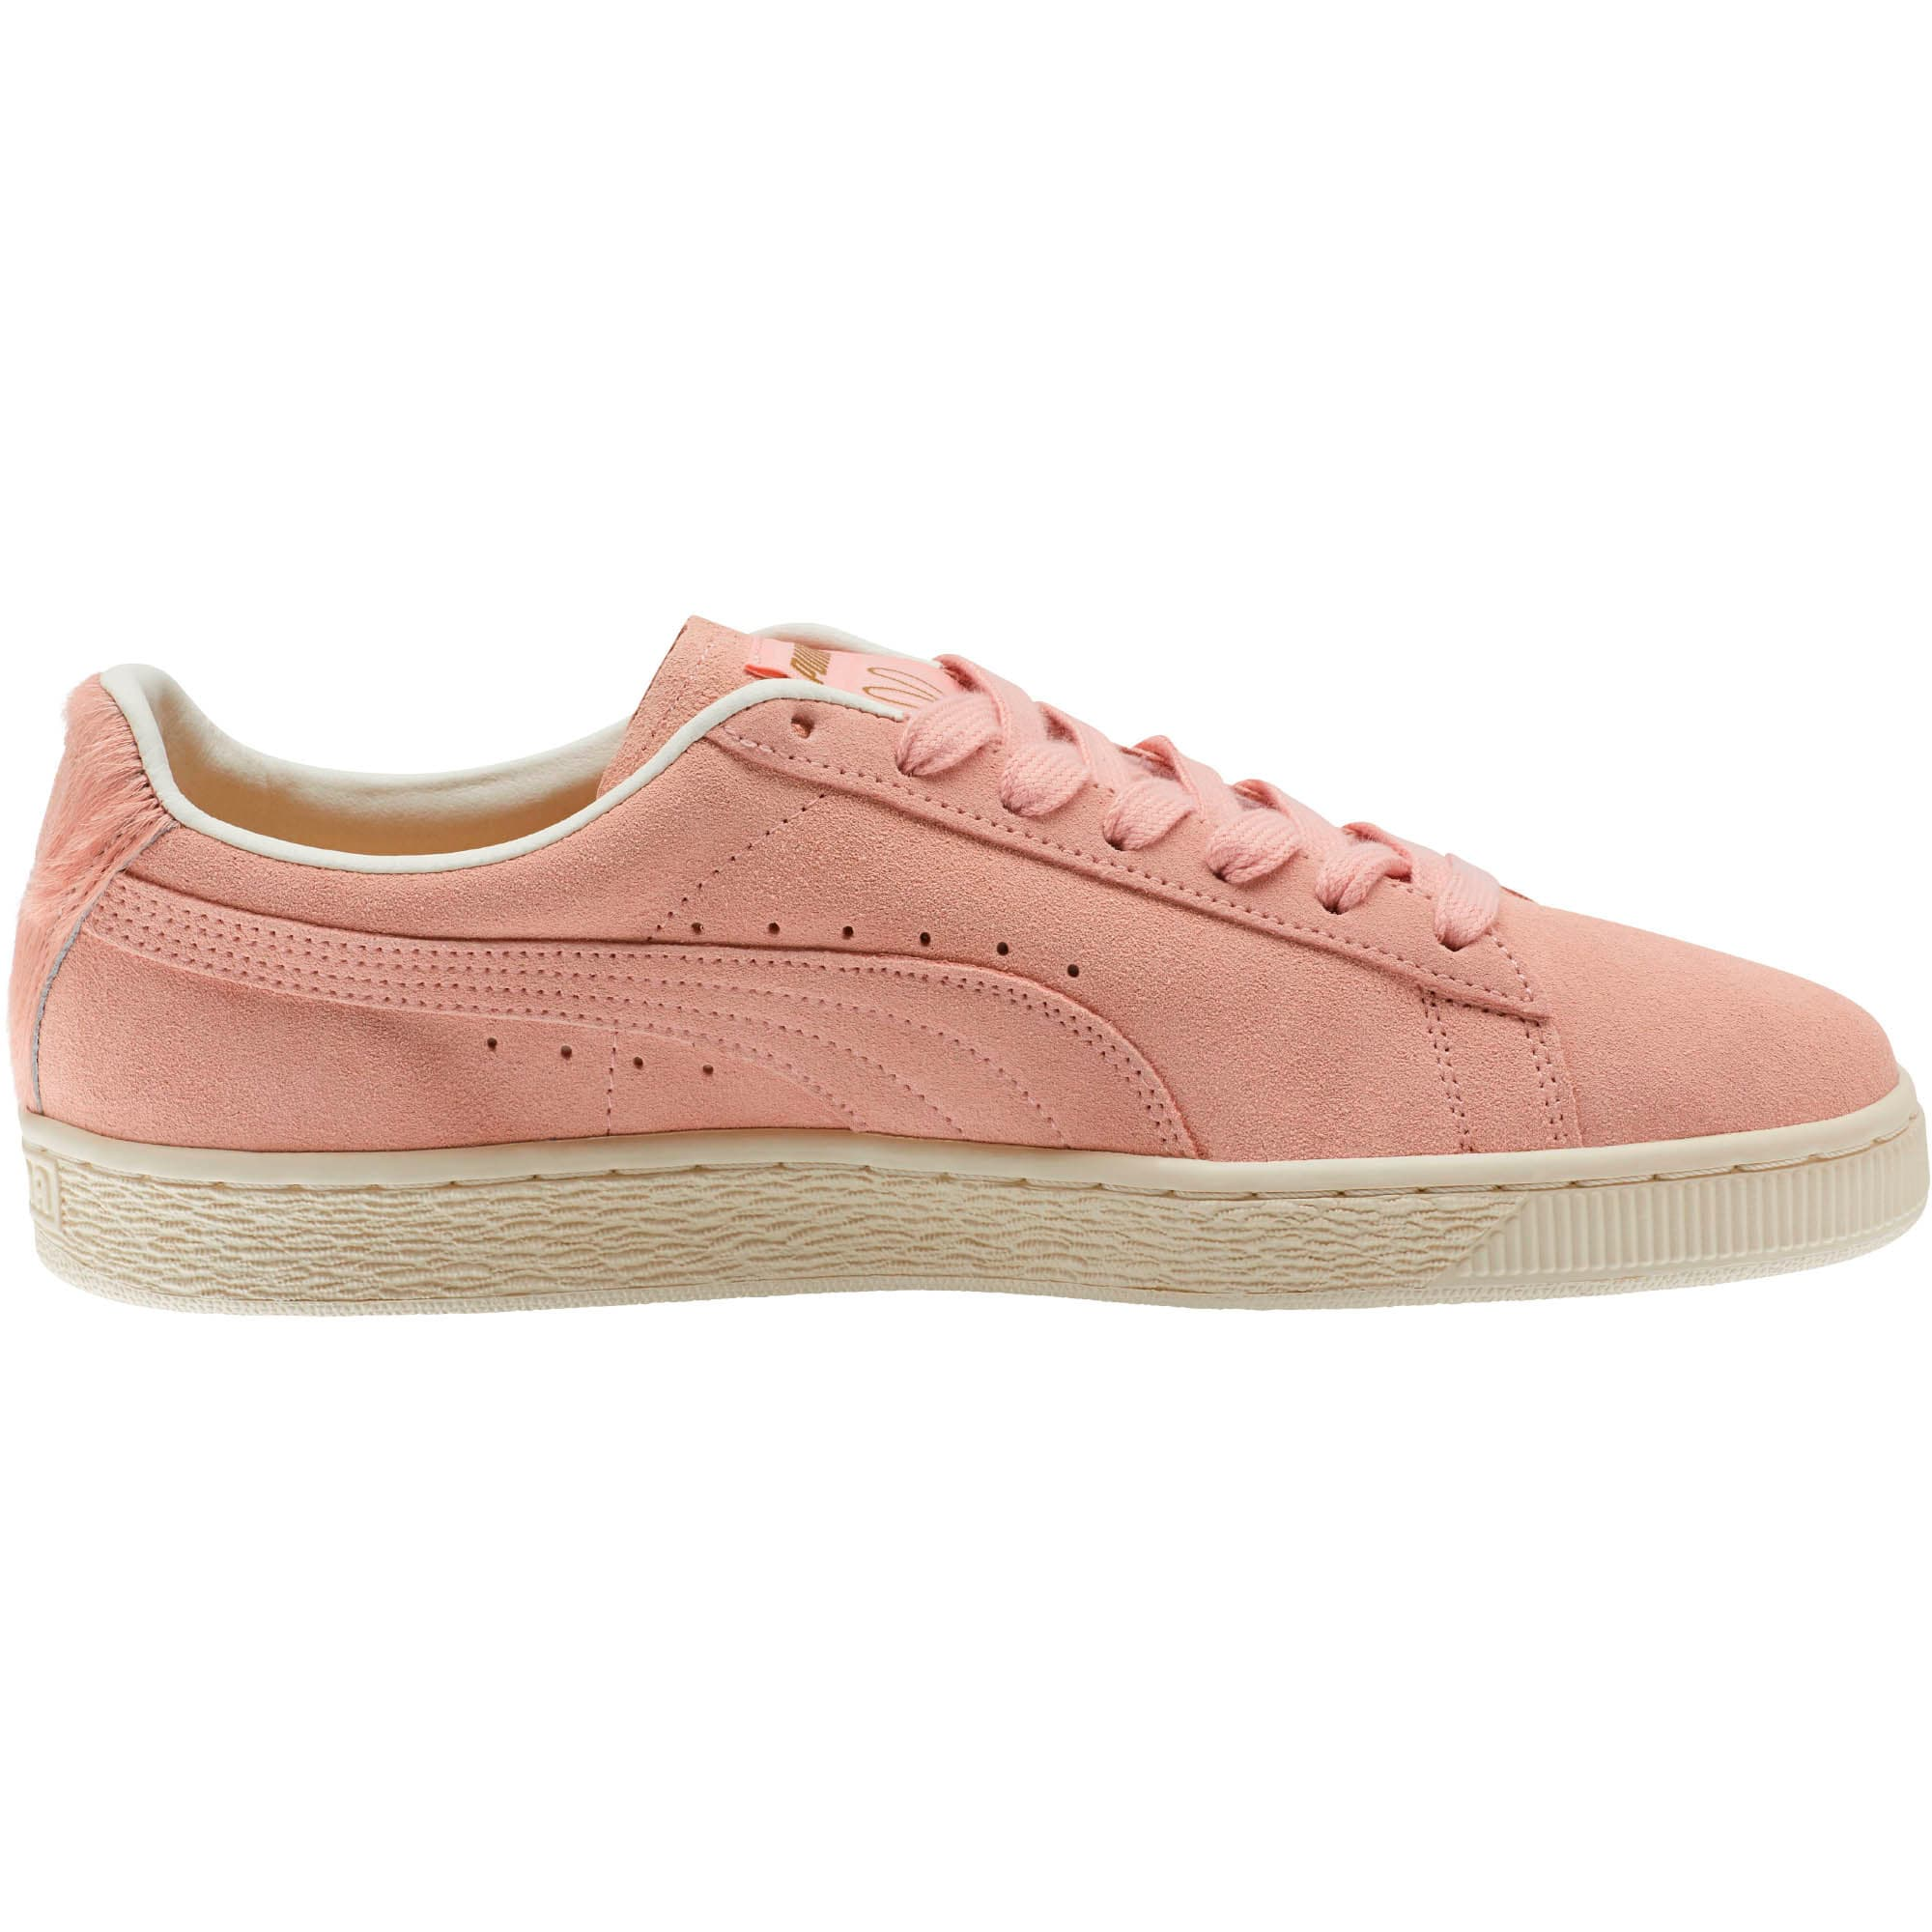 Thumbnail 4 of Suede Classic Easter Sneakers, Coral Cloud-Whisper White, medium